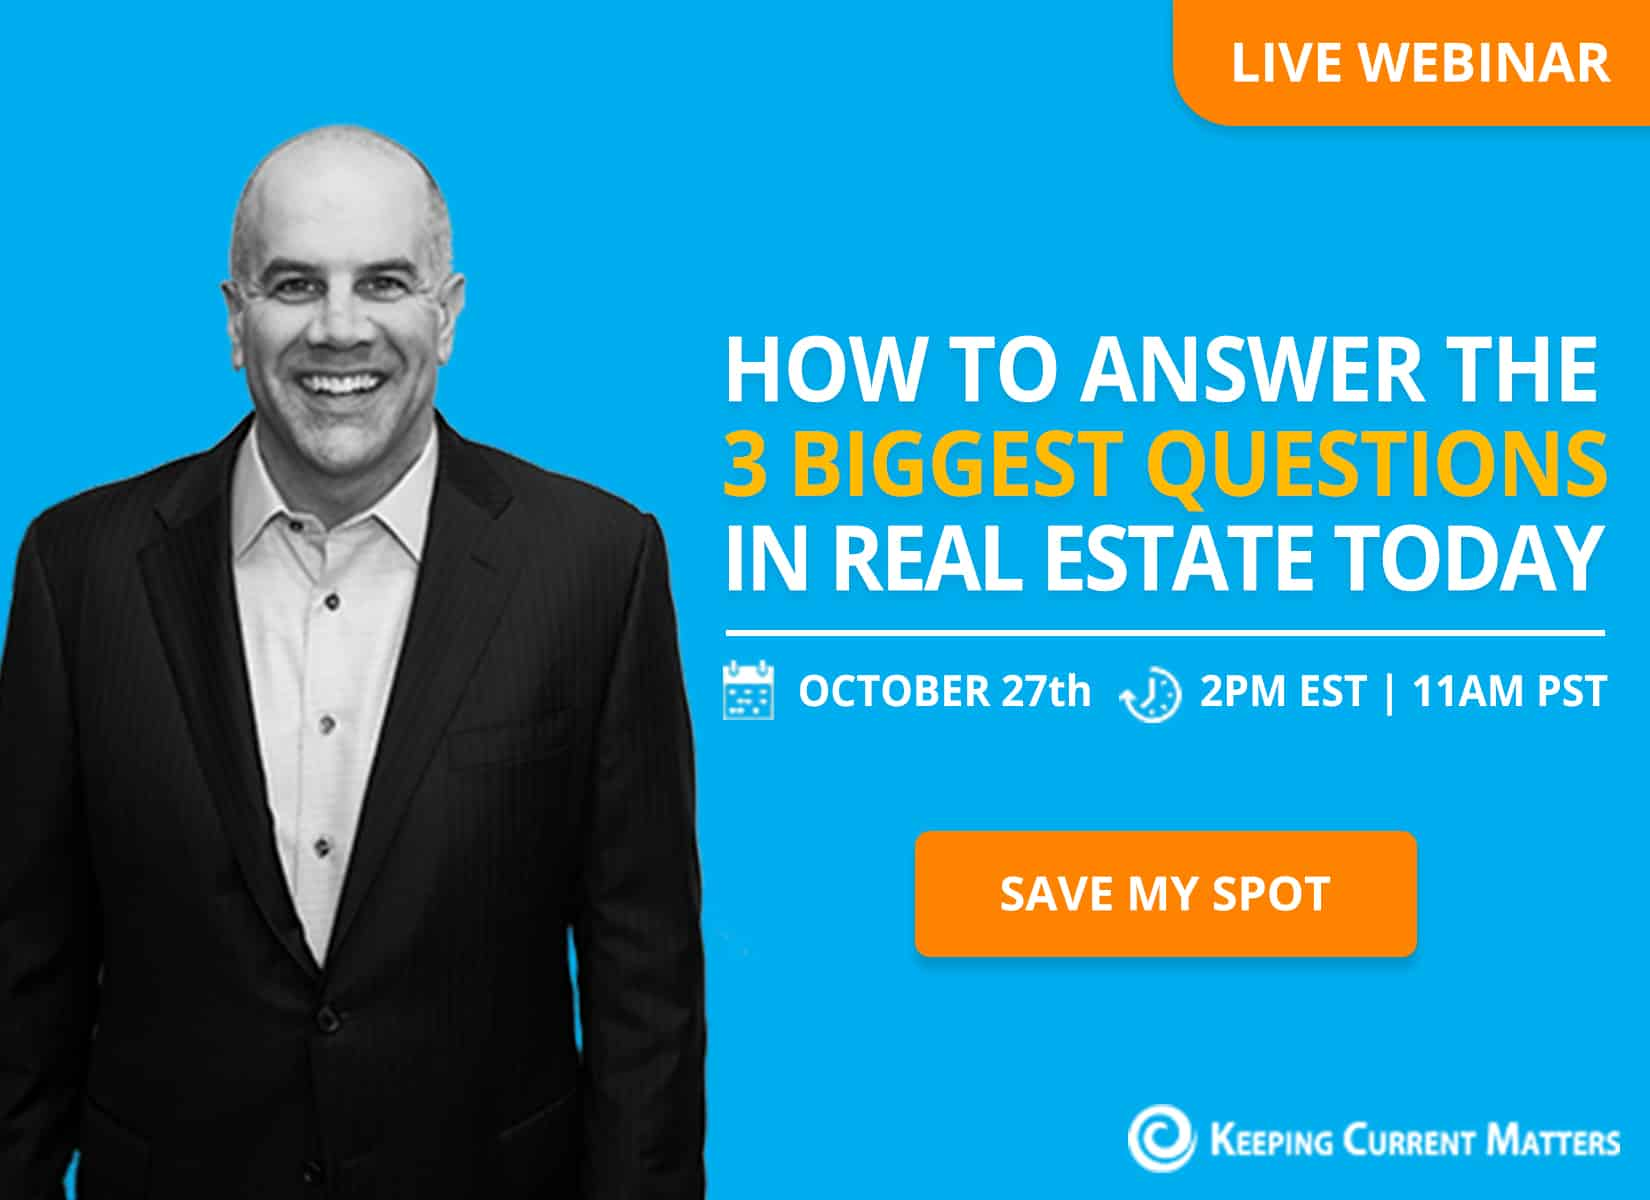 How to Answer the 3 Biggest Questions in Real Estate Today | Keeping Current Matters